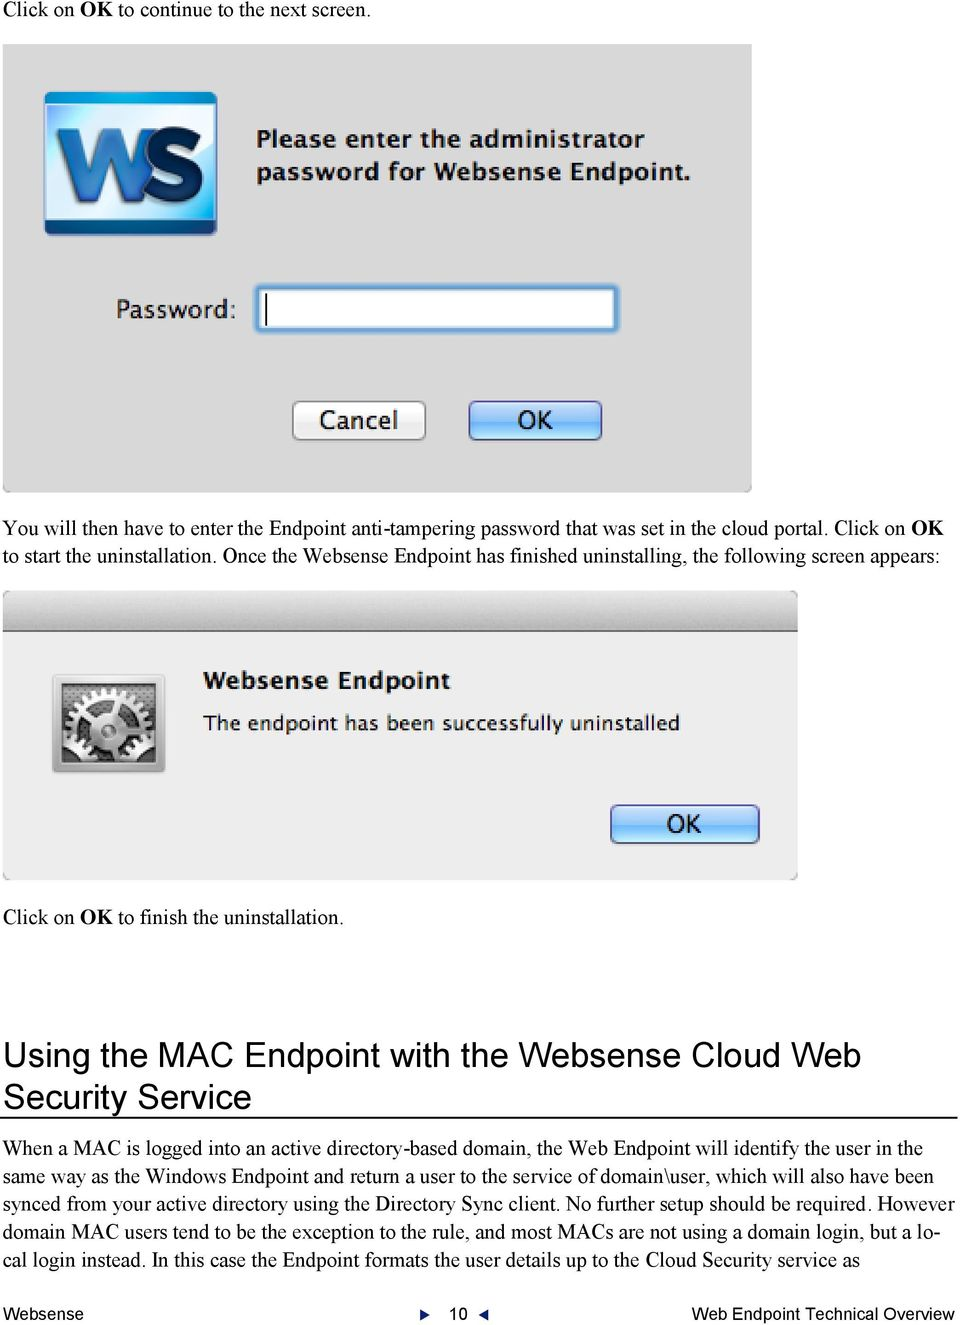 Using the MAC Endpoint with the Websense Cloud Web Security Service When a MAC is logged into an active directory-based domain, the Web Endpoint will identify the user in the same way as the Windows